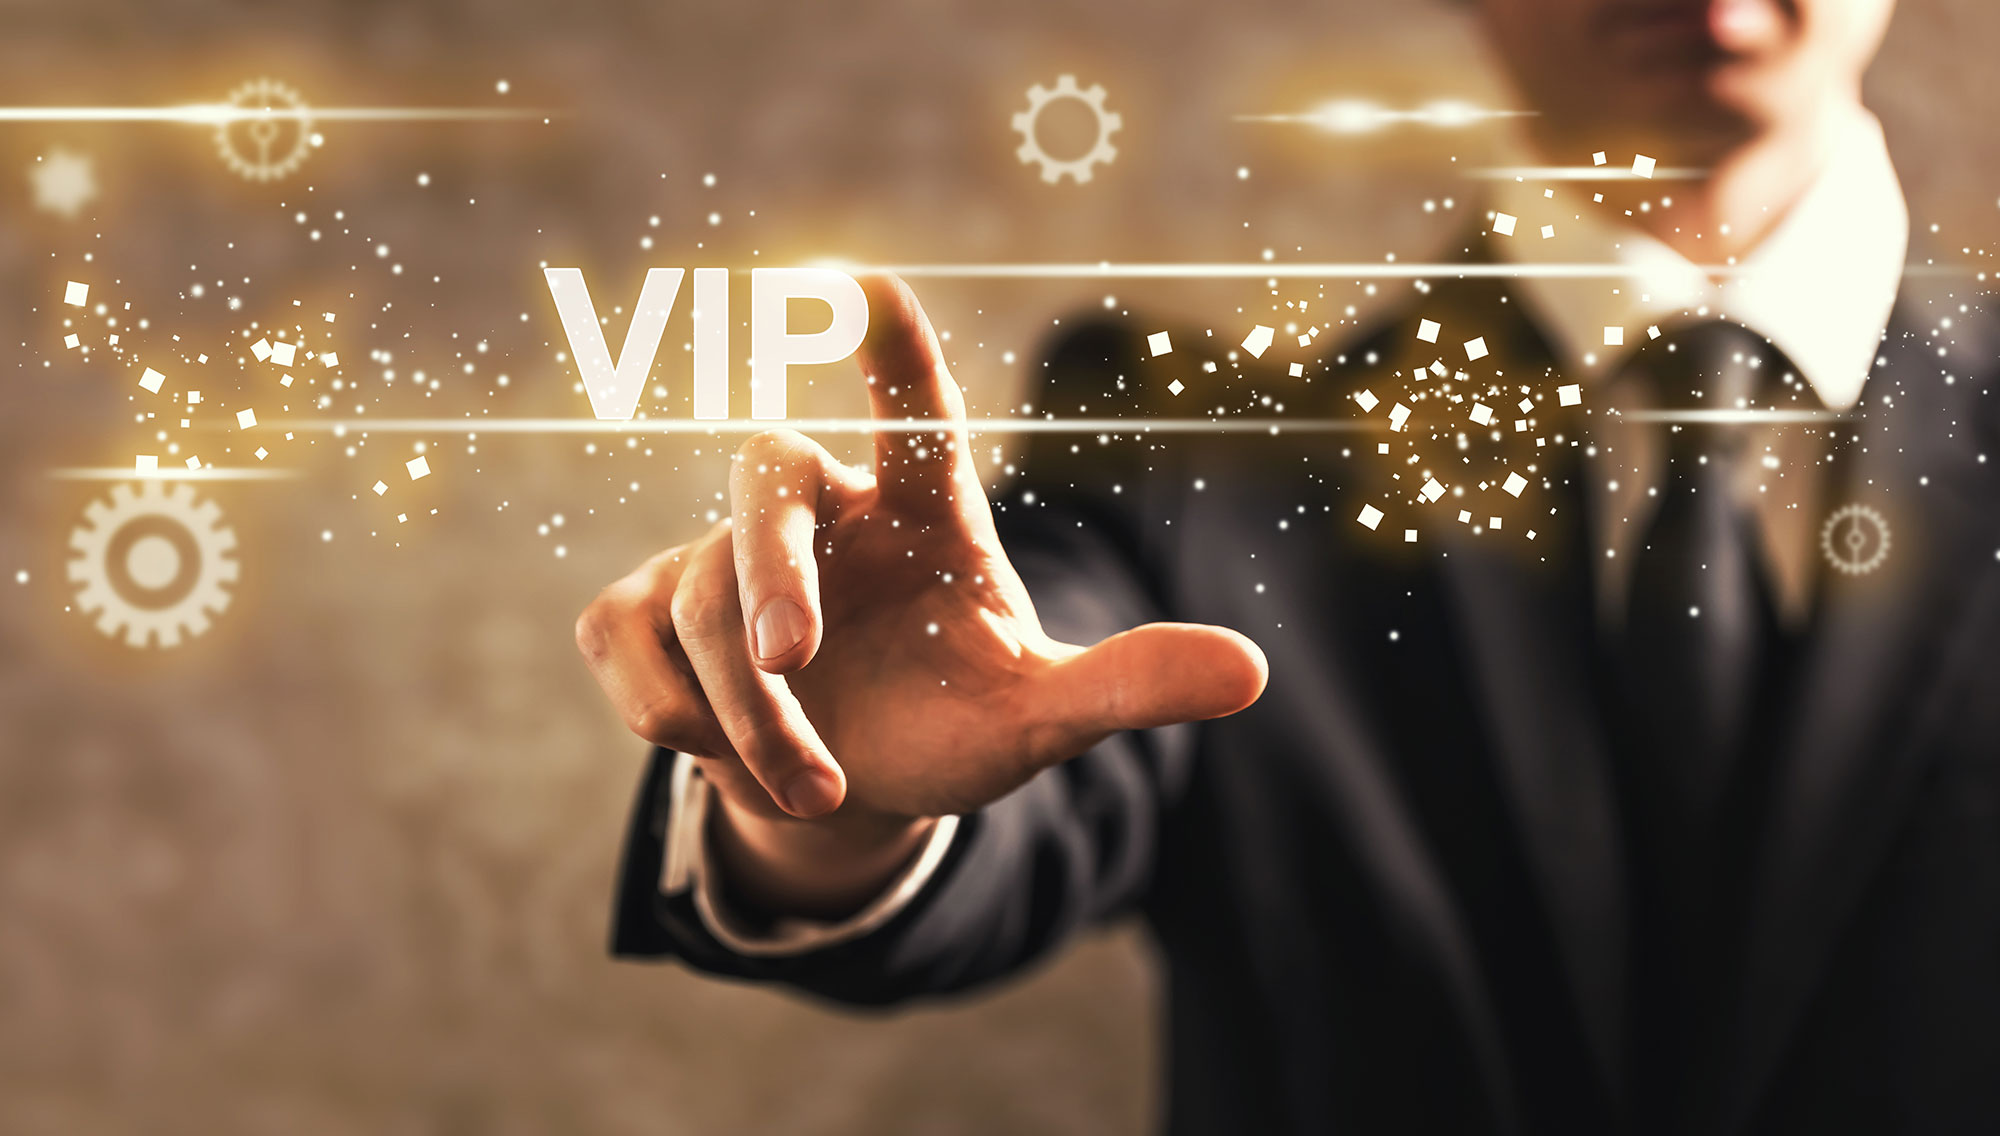 5 Ways to Impress a VIP in Houston